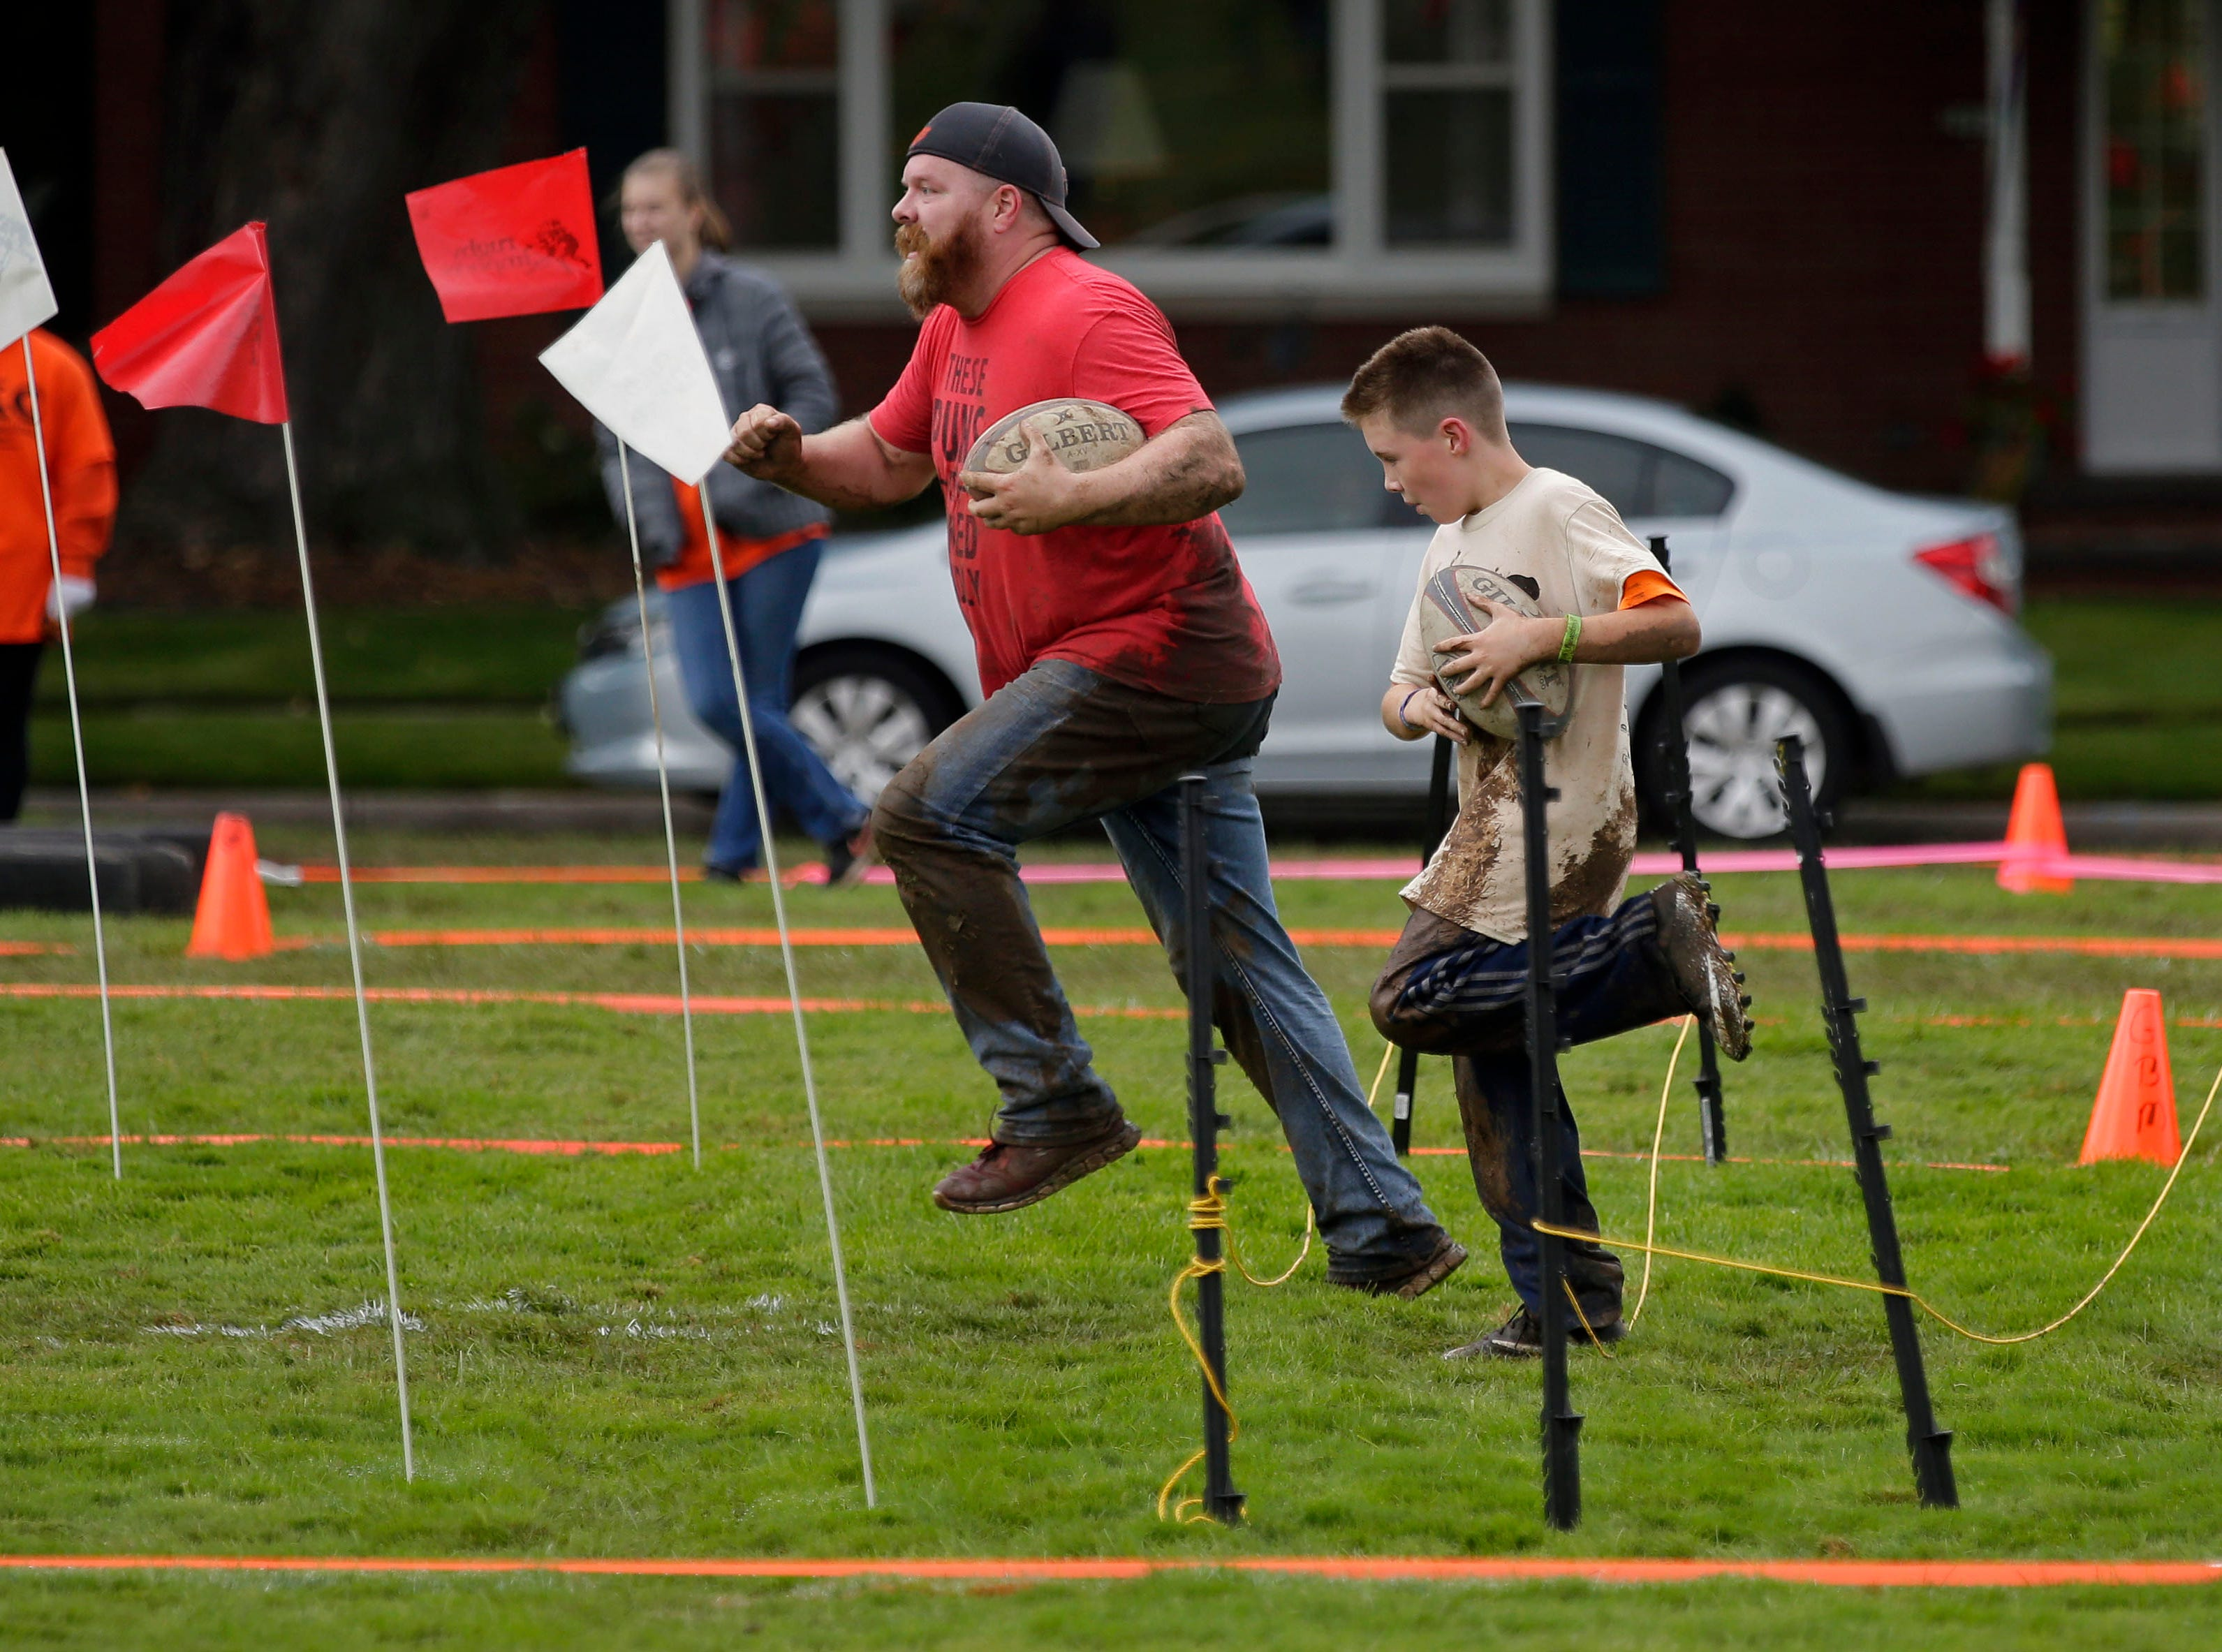 Dale Smith and his son, Rigley, tackle an obstacle as the Essity Fox Valley Tough Kid Challenge takes place Saturday, October 6, 2018, on a course at Highlands Elementary School in Appleton, Wis. The event raised funds for Physical Education Departments in Appleton.